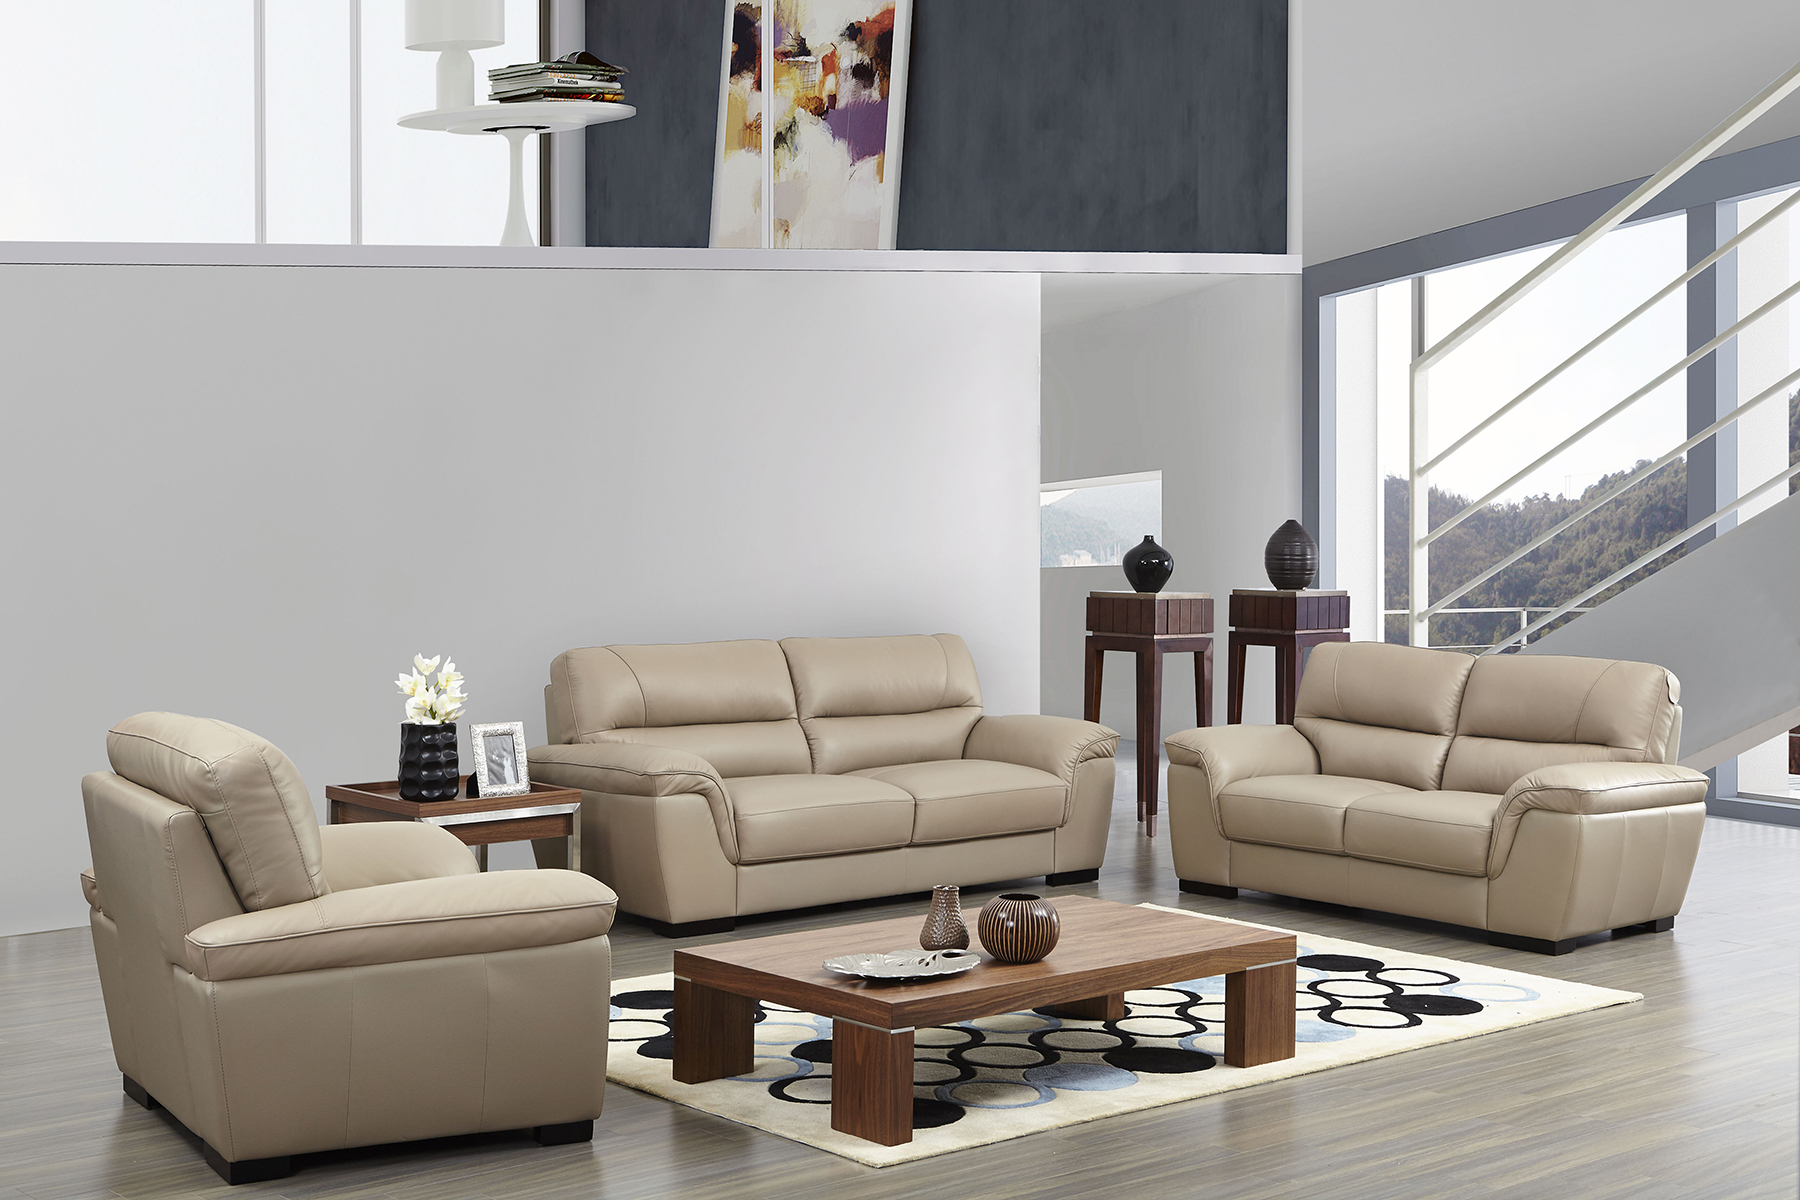 contemporary beige leather stylish sofa set with wooden legs san jose california esf8052. Black Bedroom Furniture Sets. Home Design Ideas